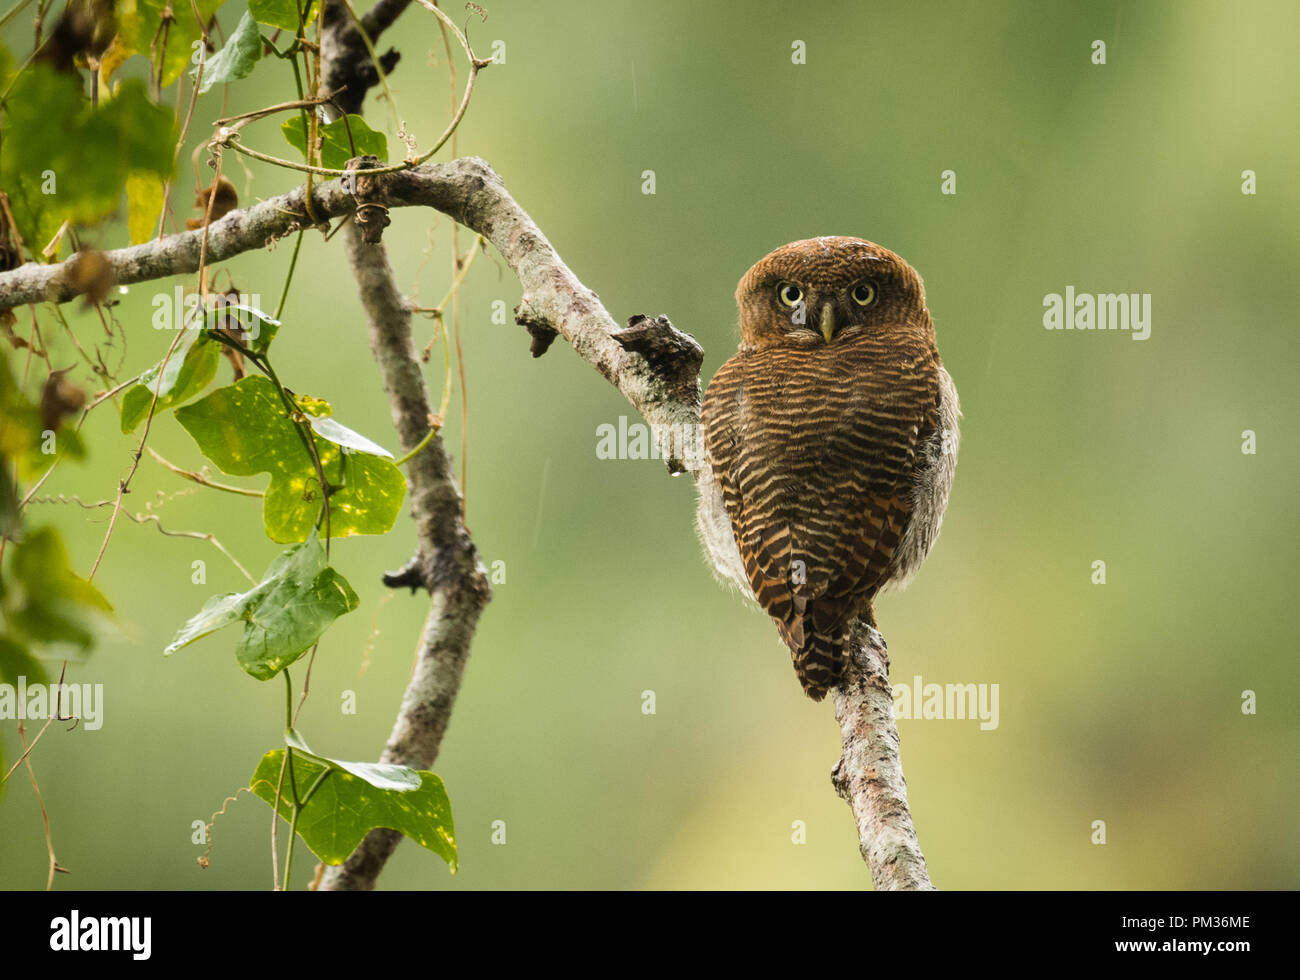 Jungle owlet or barred jungle owlet (Glaucidium radiatum) - Stock Image